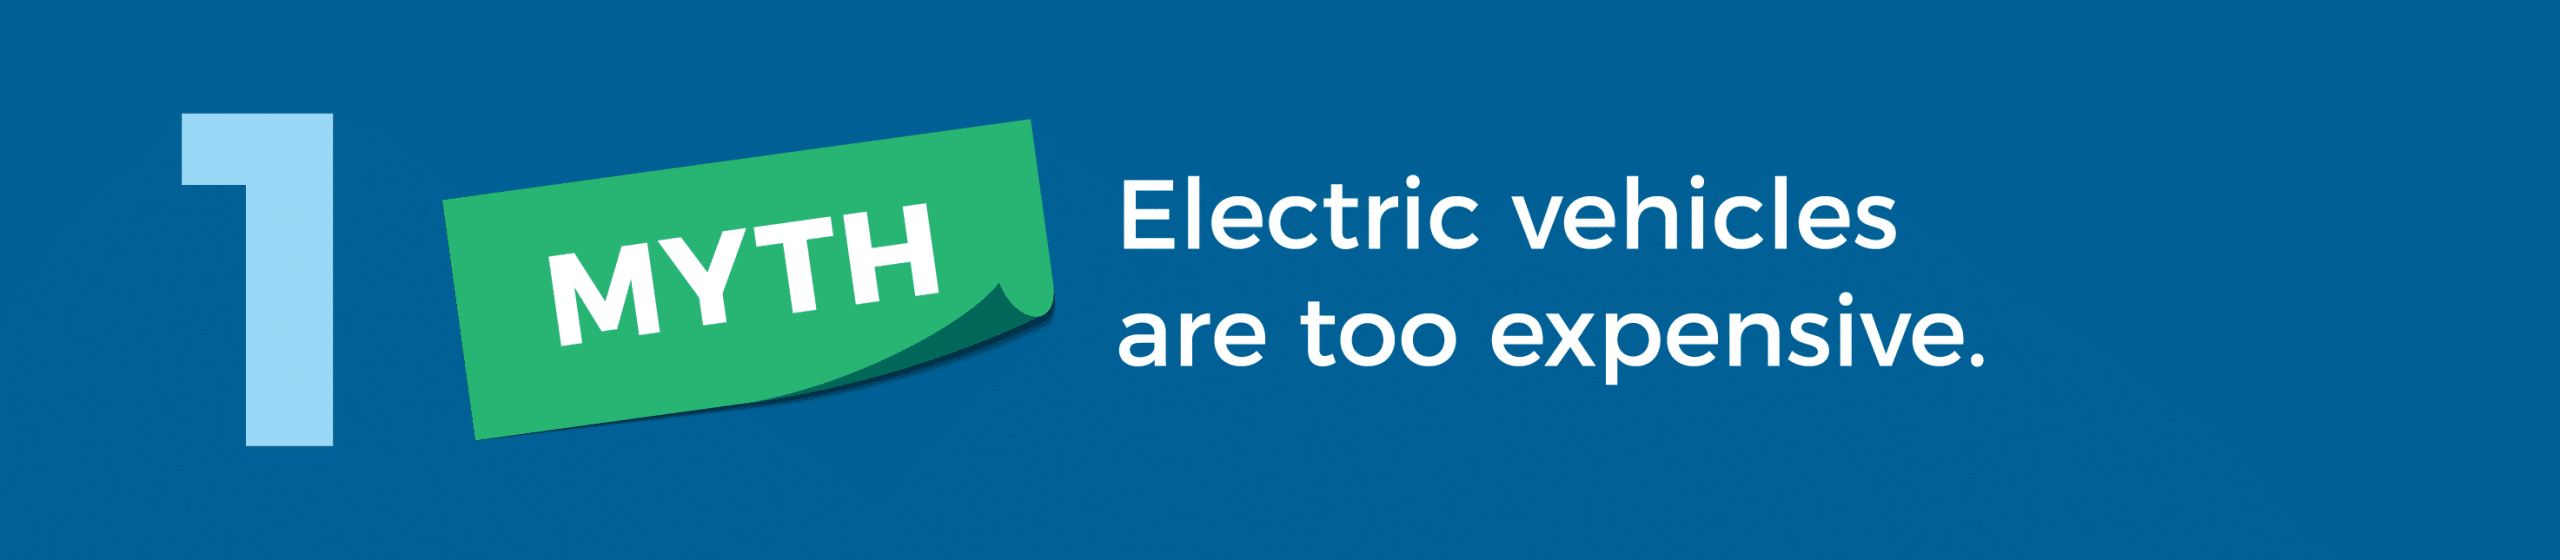 5 Common Myths About Electric Vehicles